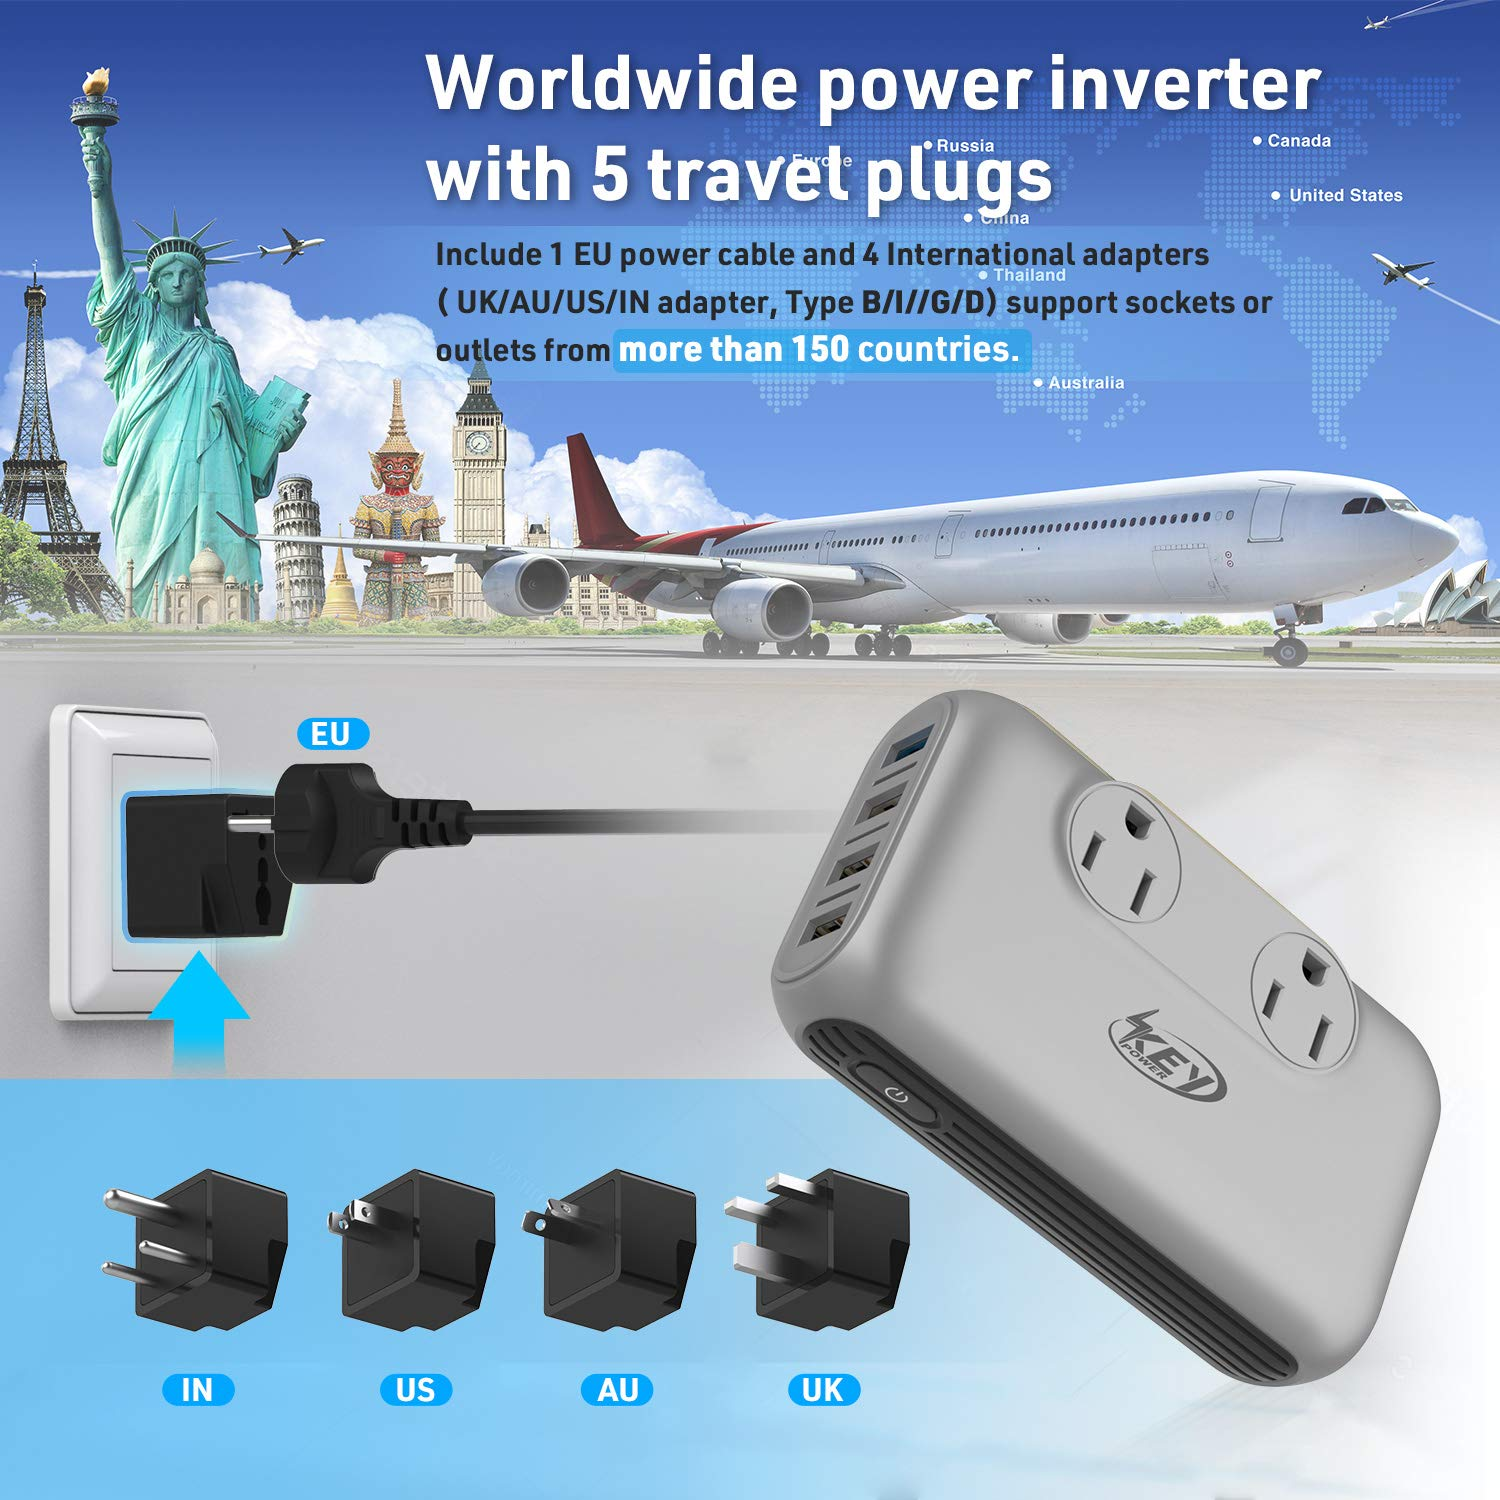 Key Power 220V to 110V Step Down Voltage Converter and International Travel Adapter, for CPAP, Hair Straightener Flat Iron, Hair Curling Iron, Toothbrush, Laptop - [Safely Use USA Electronic Overseas] by Key Power (Image #5)